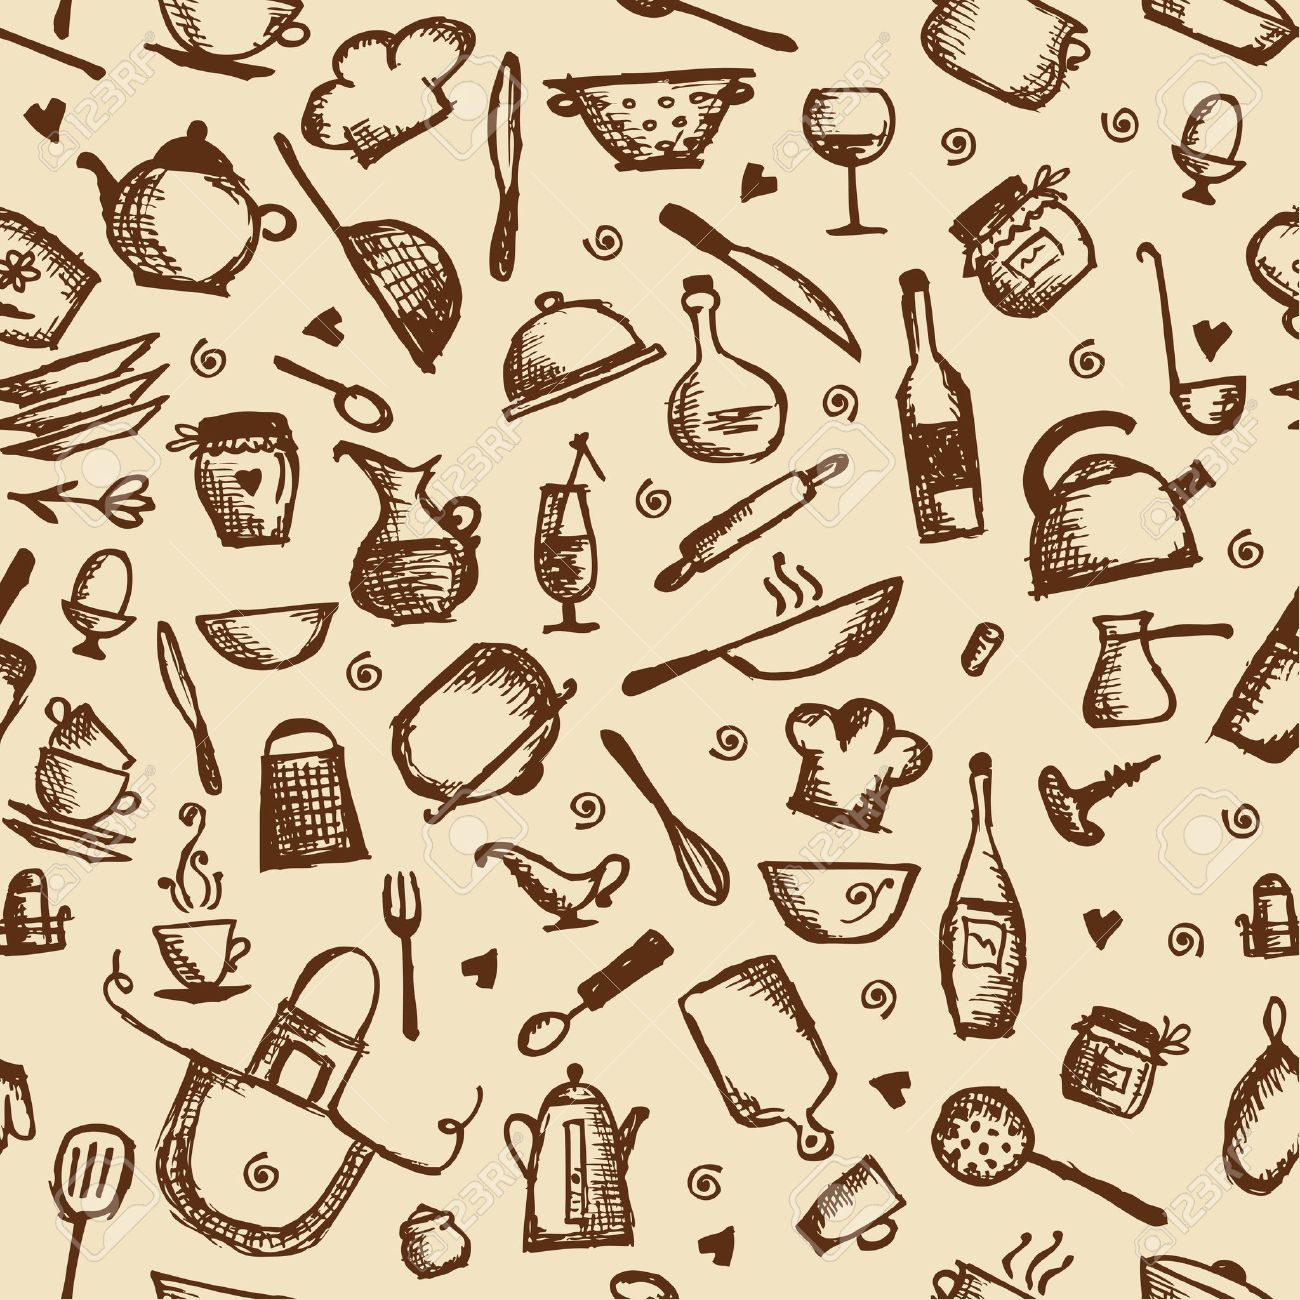 Kitchen utensils sketch, seamless pattern Stock Vector - 14946670